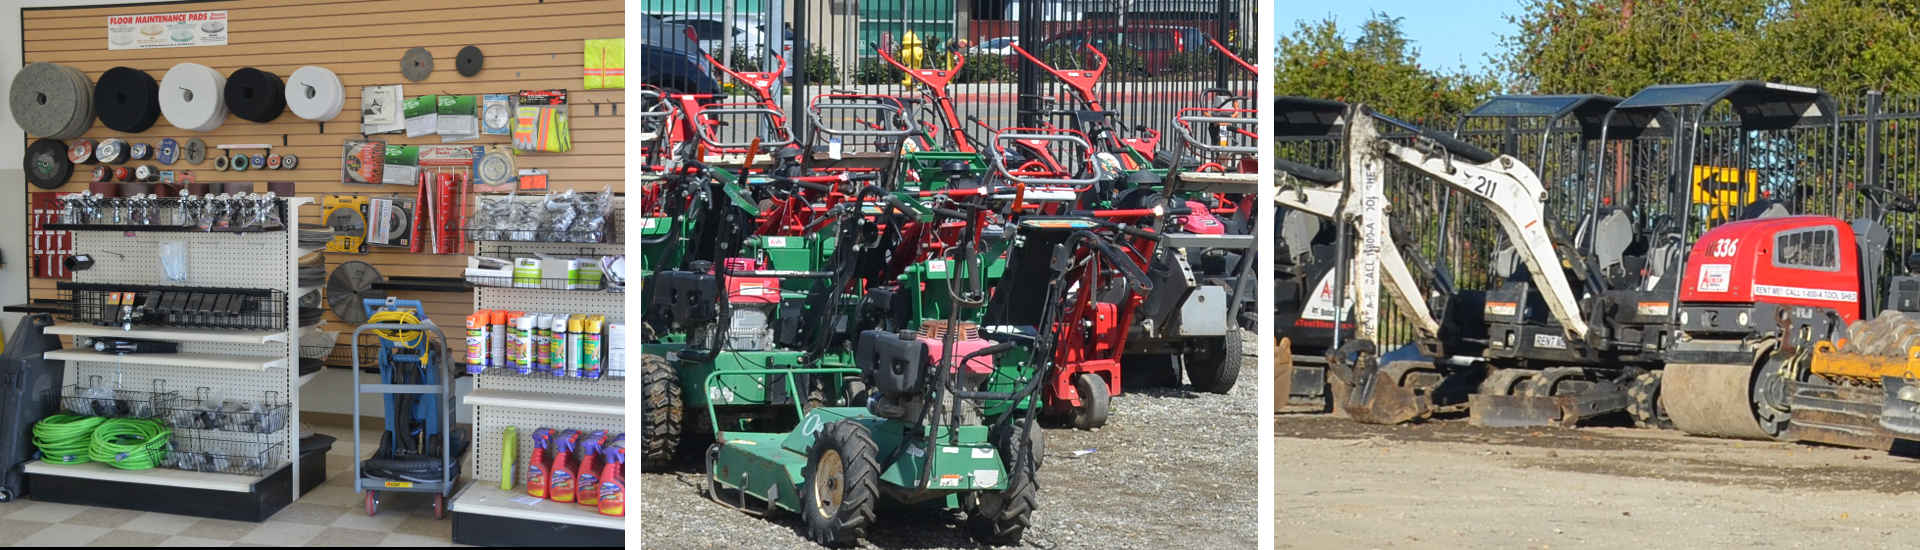 Equipment Rentals in Santa Clara County, Santa Cruz County, Monterey Bay & the Silicon Valley